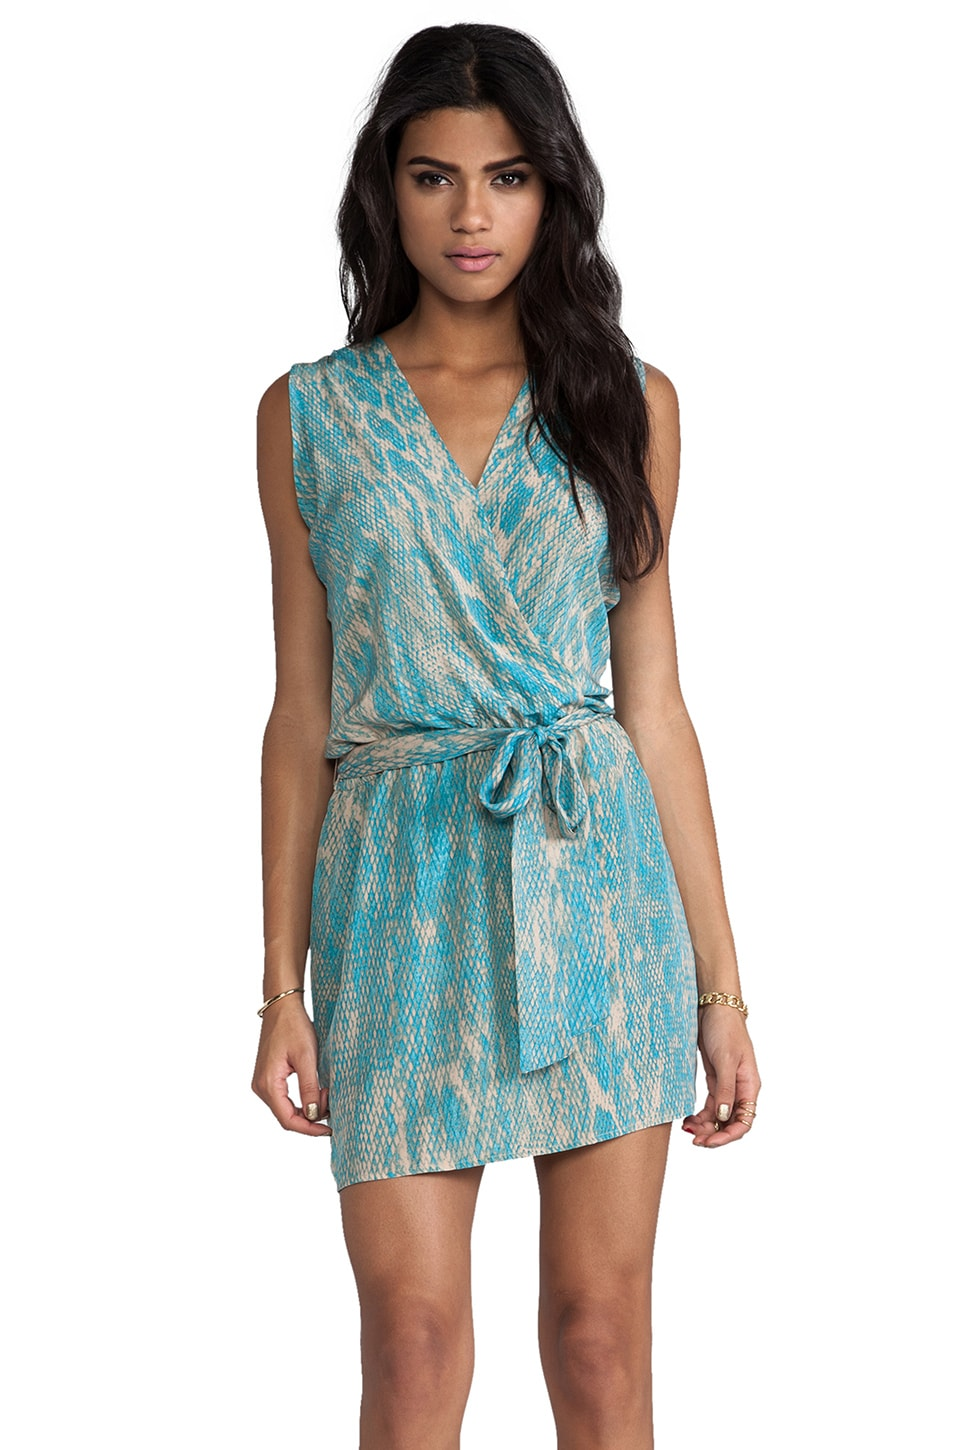 Karina Grimaldi Azalea Print Mini Dress in Turquoise Snake